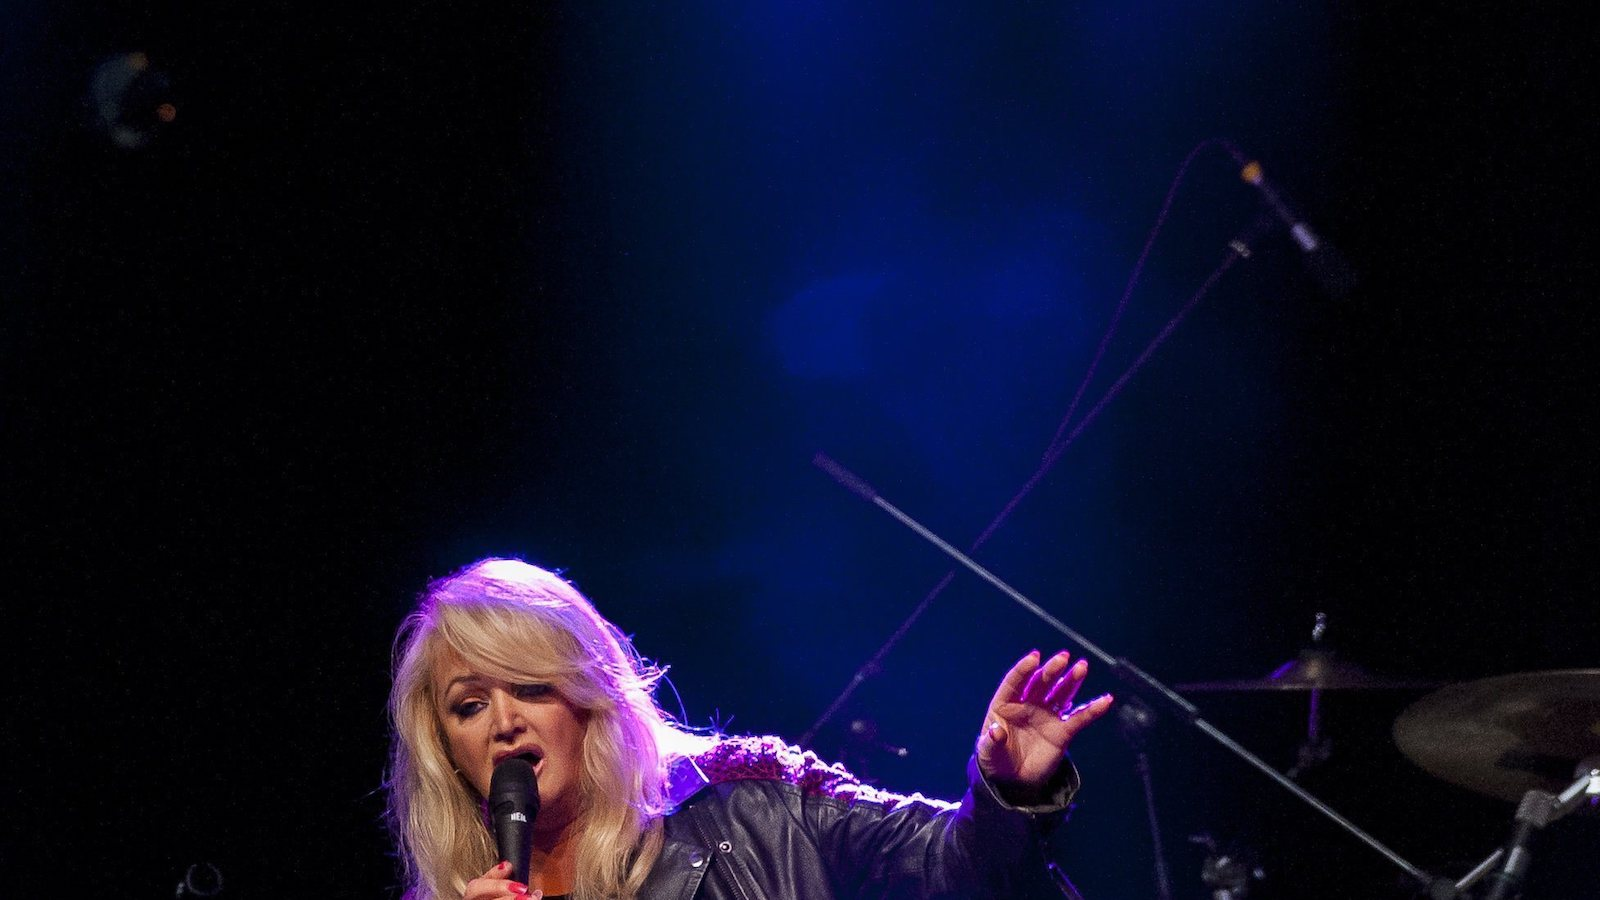 Welsh rock singer and songwriter Bonnie Tyler performs during her concert in Debrecen, 226 kms east of Budapest, Hungary, Saturday, June 18, 2016. (Zsolt Czegledi/MTI via AP)